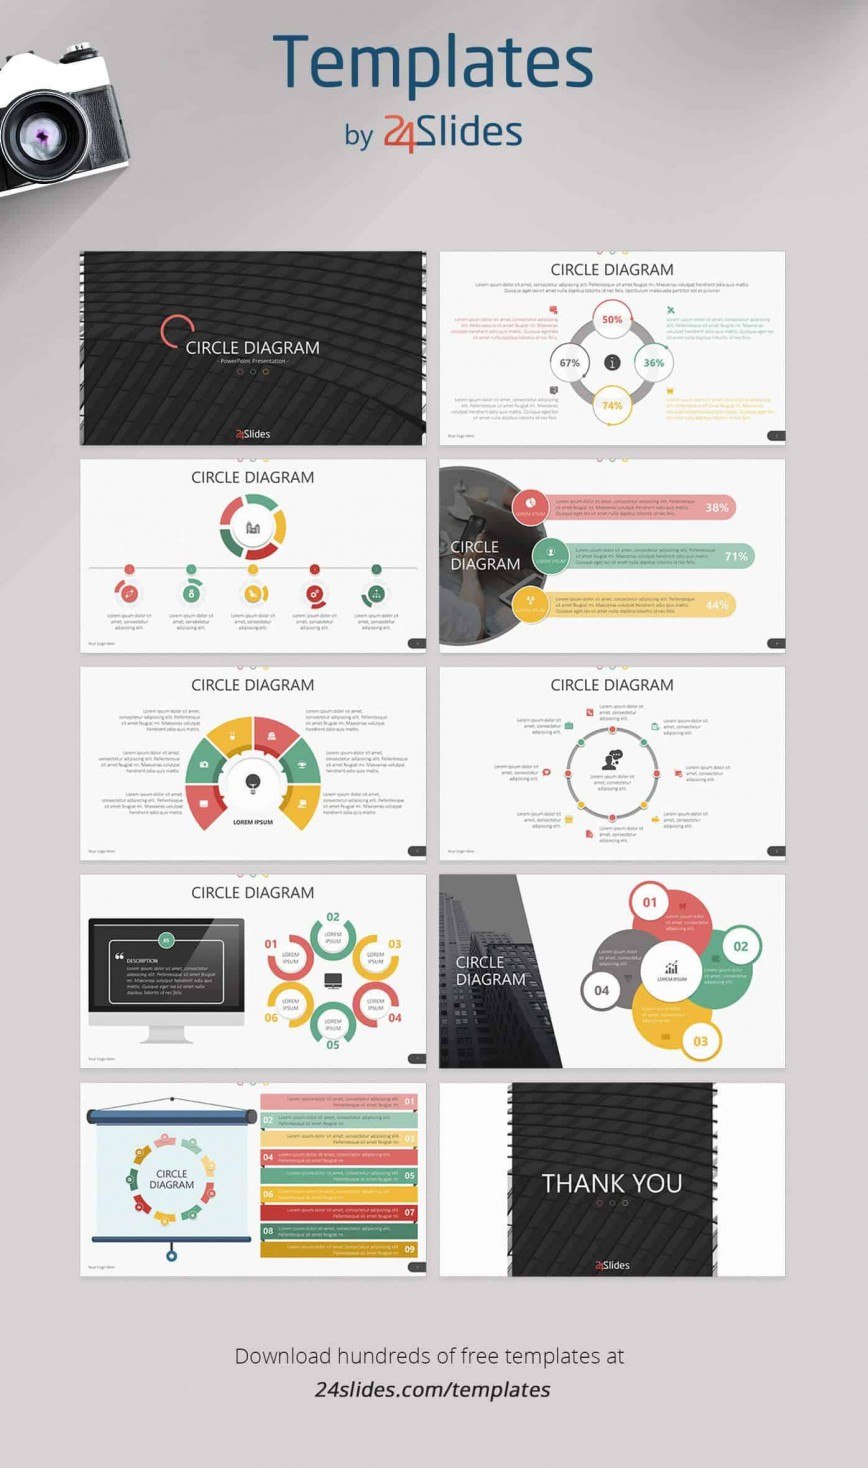 000 Impressive Free Powerpoint Presentation Template Example  Templates For Teacher Download 2020 Mac